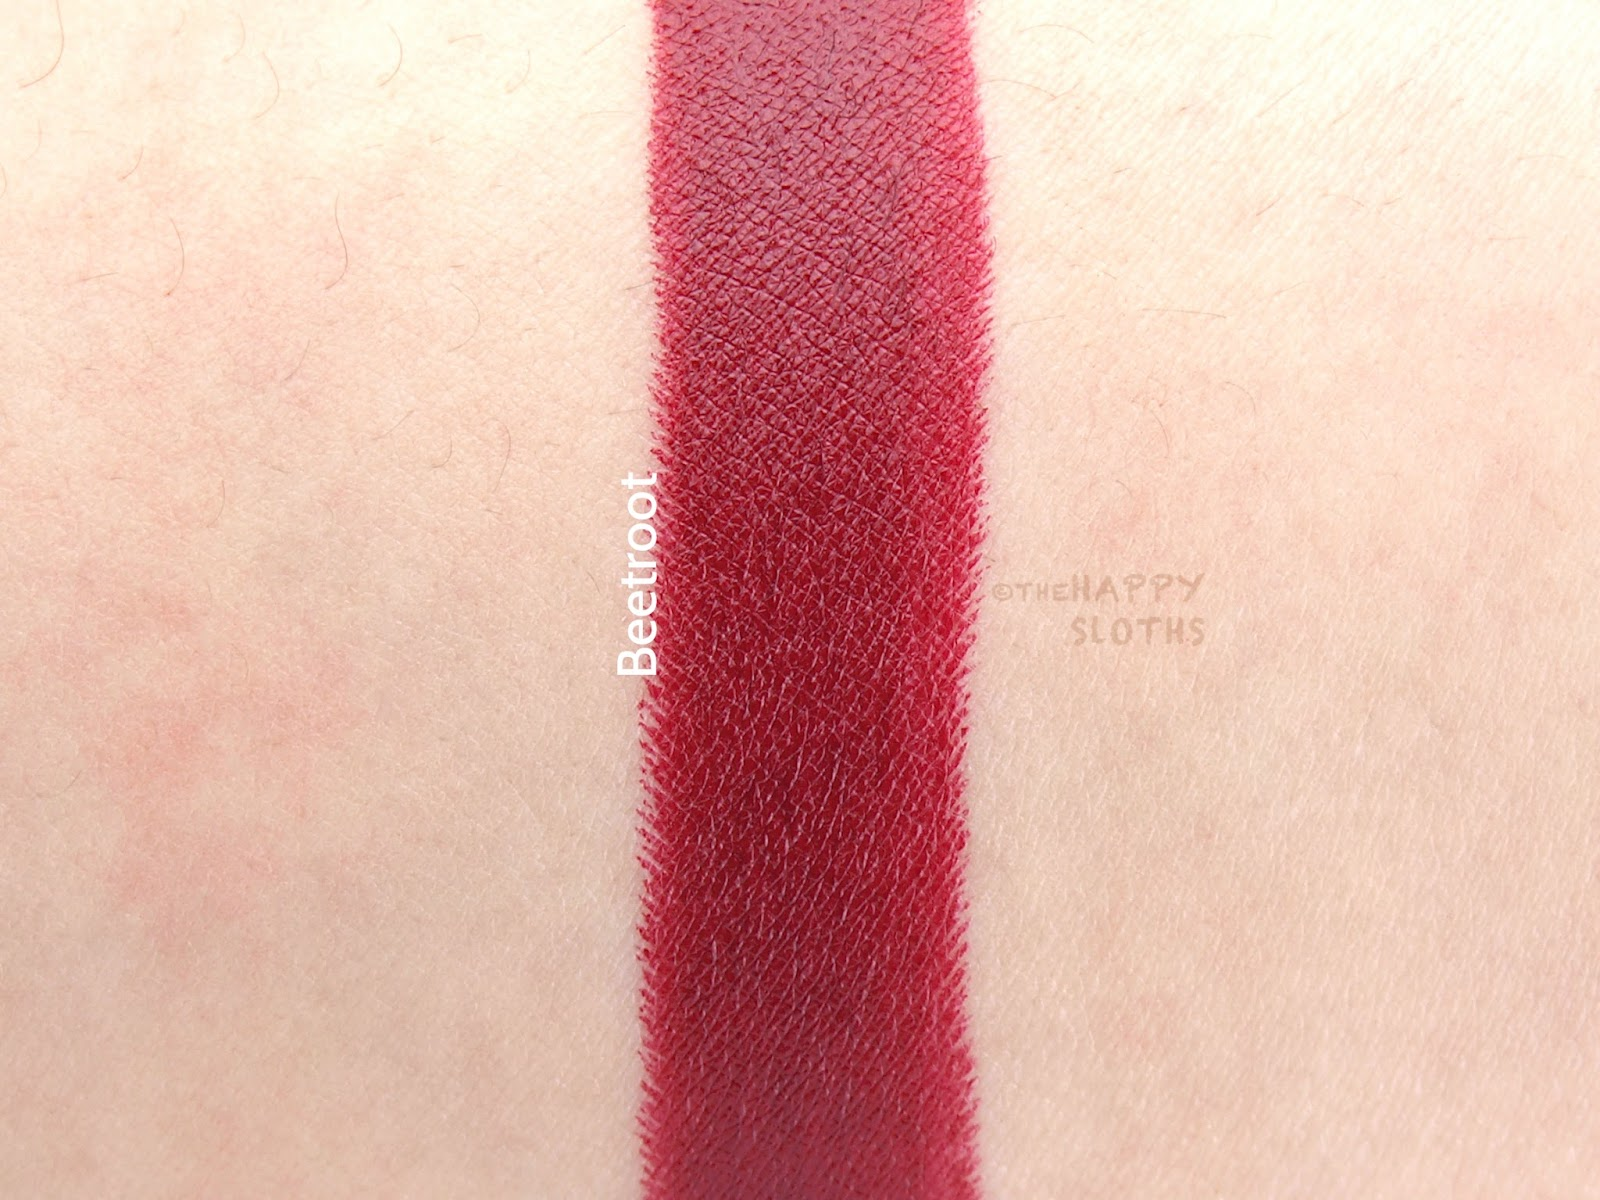 Bite Beetroot Swatches Review